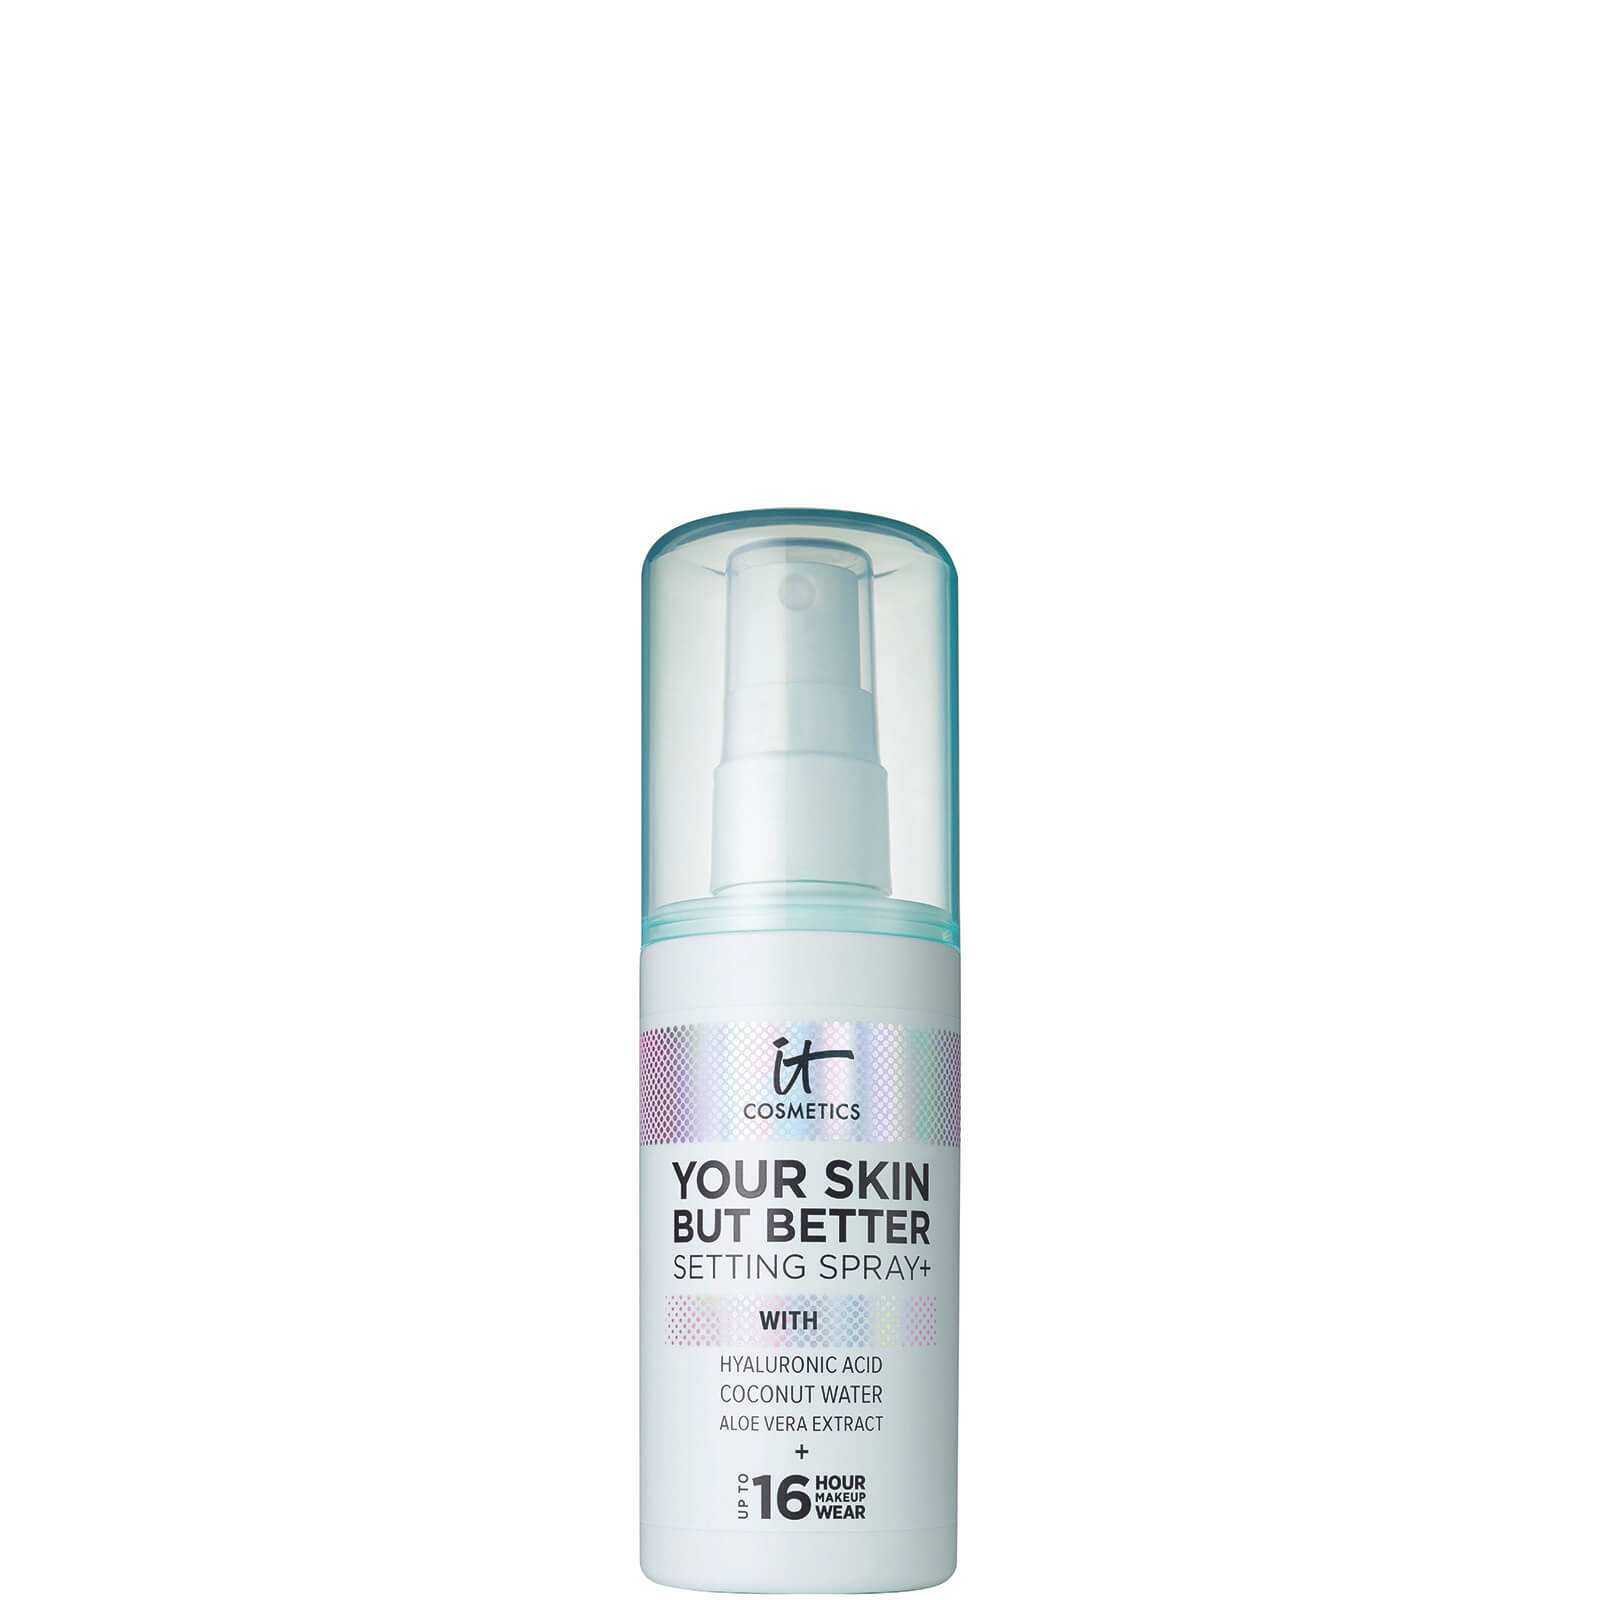 IT Cosmetics Your Skin But Better Setting Spray (Various Sizes) - 100ml